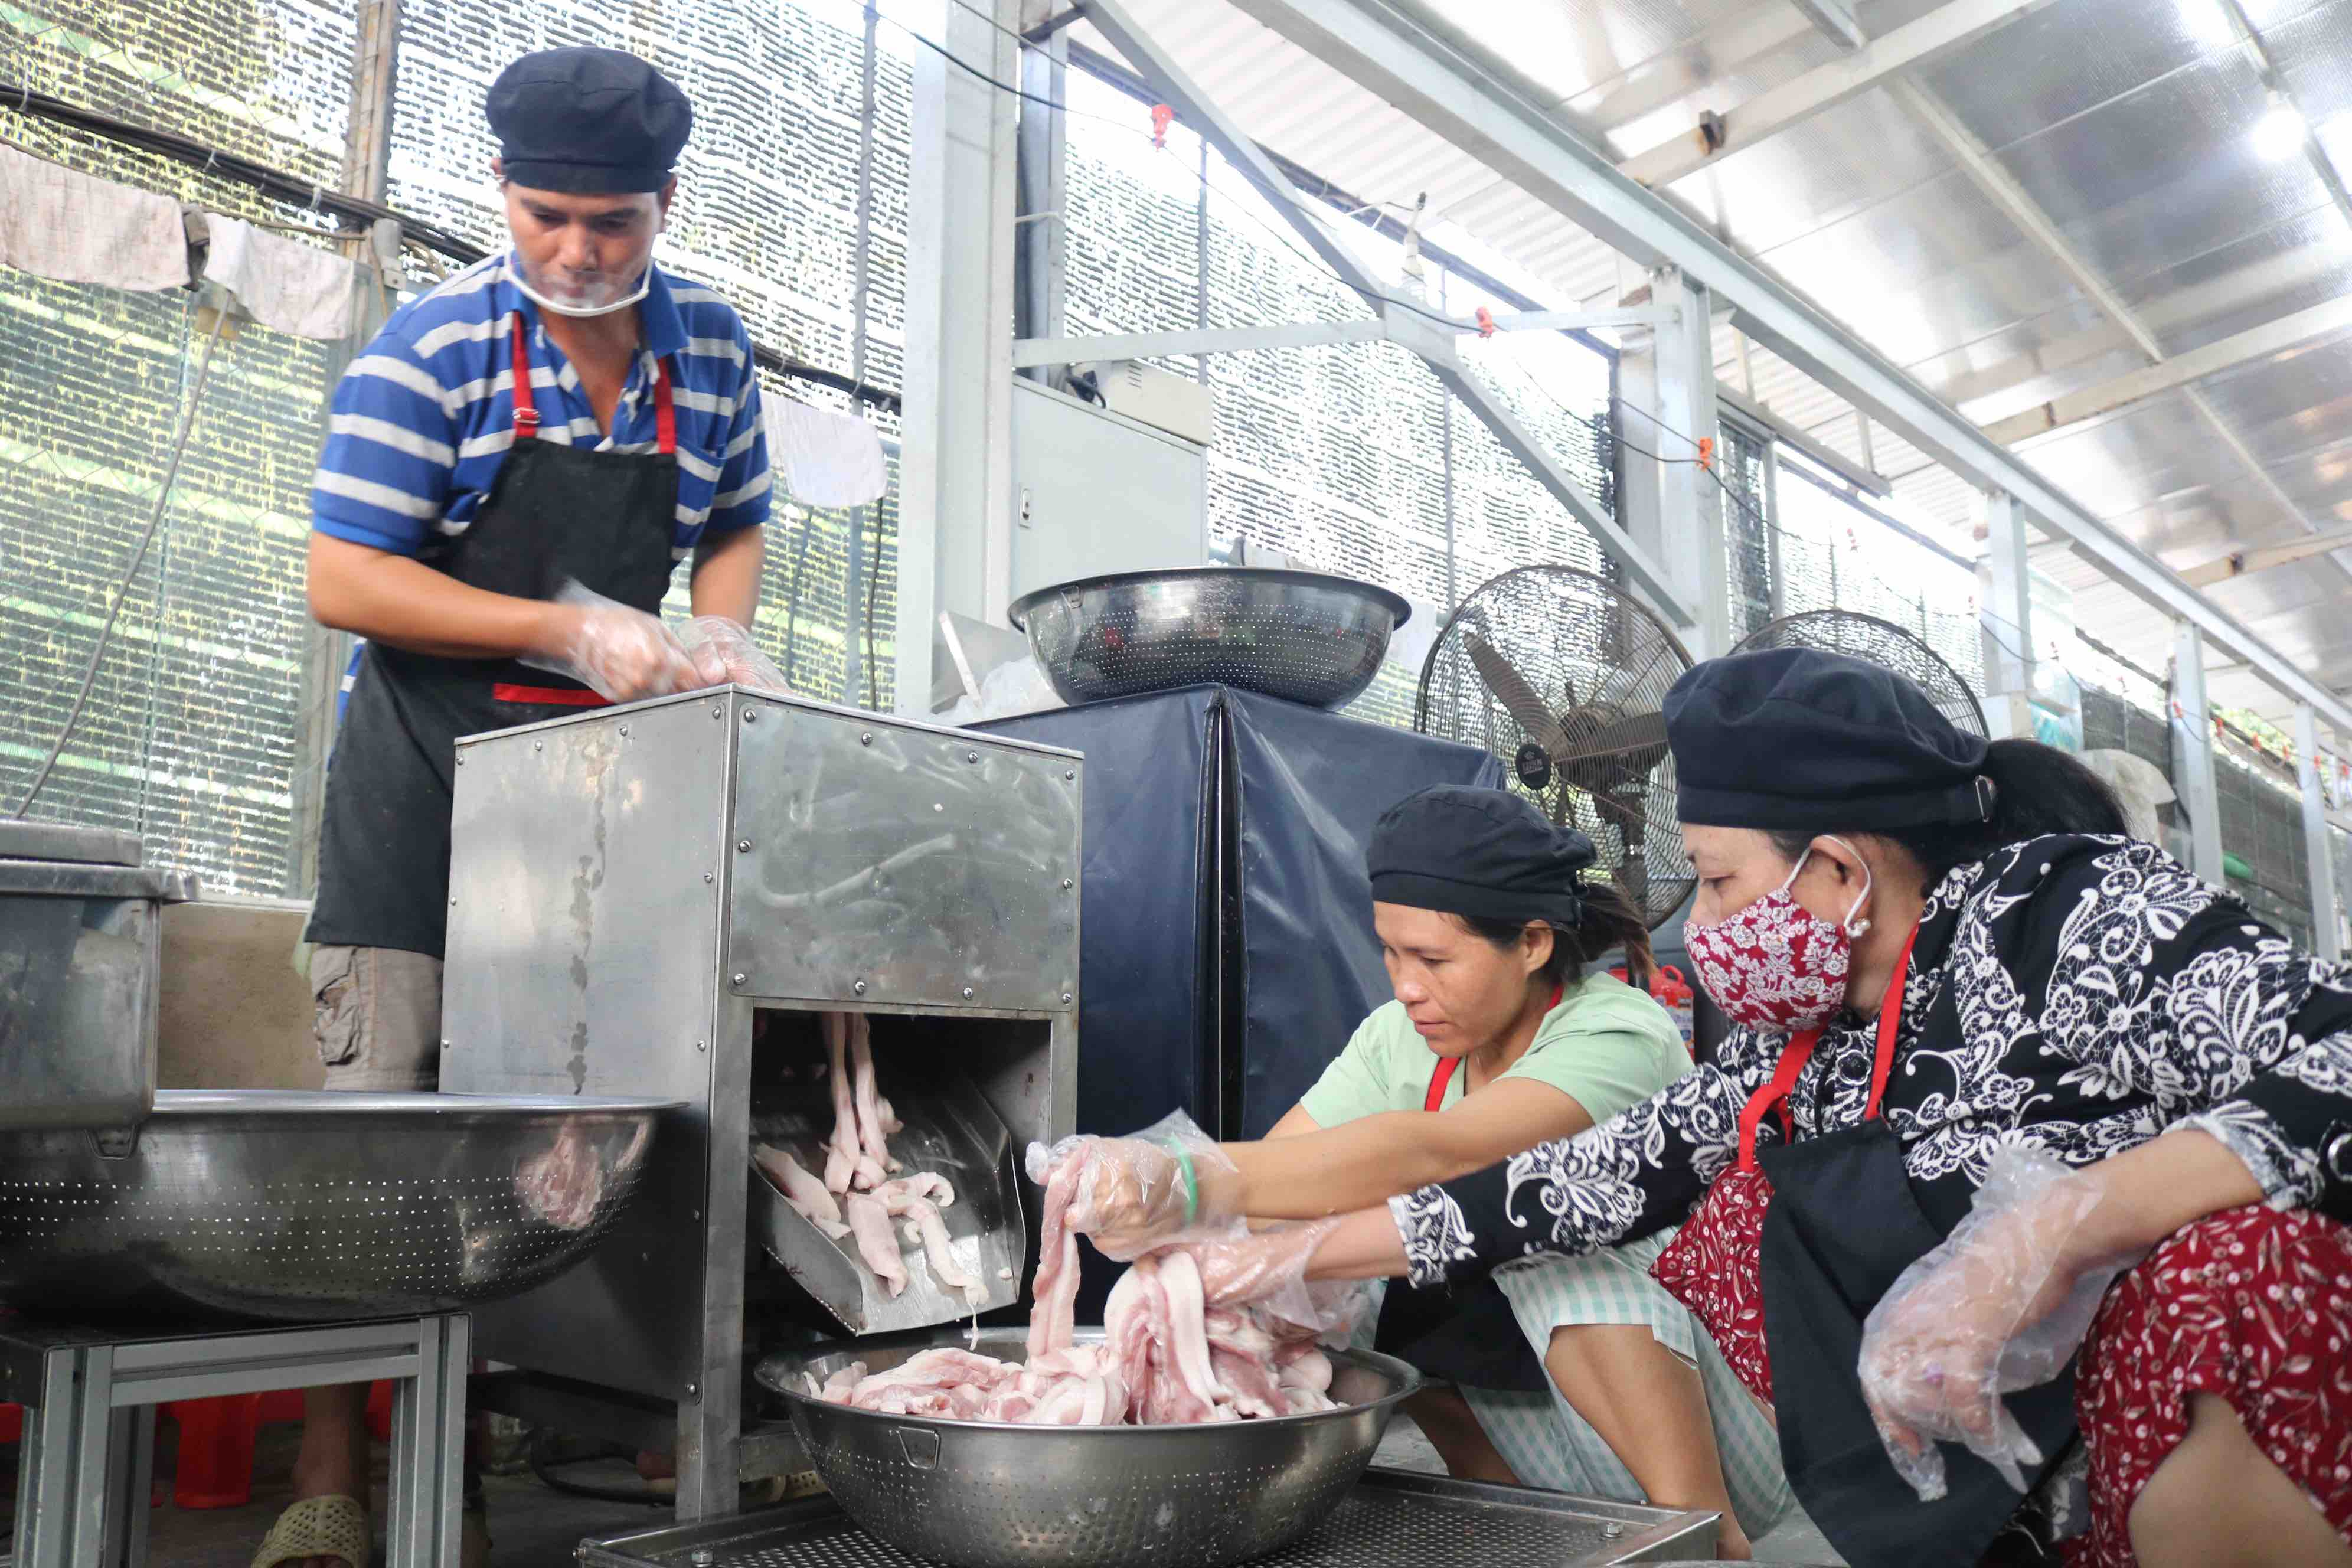 Staffs at Pham Khac Tuong's facility put the meat in the blender to cut it into small pieces. Photo: Hoang An / Tuoi Tre